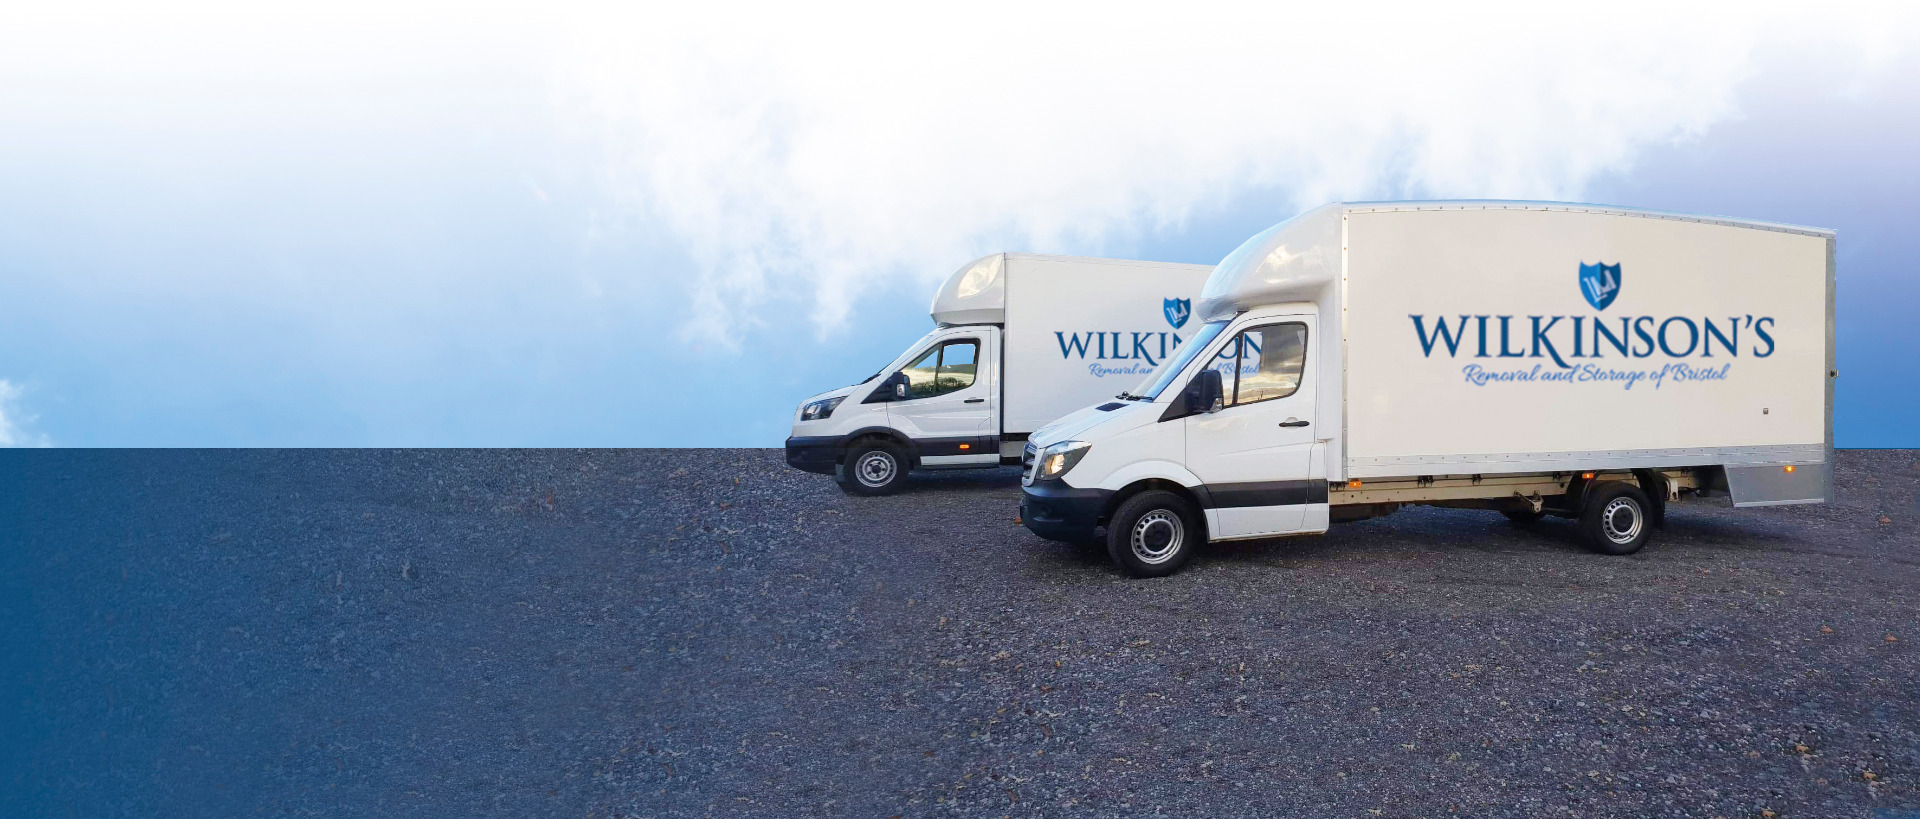 Wilkinsons removals and storage Bristol